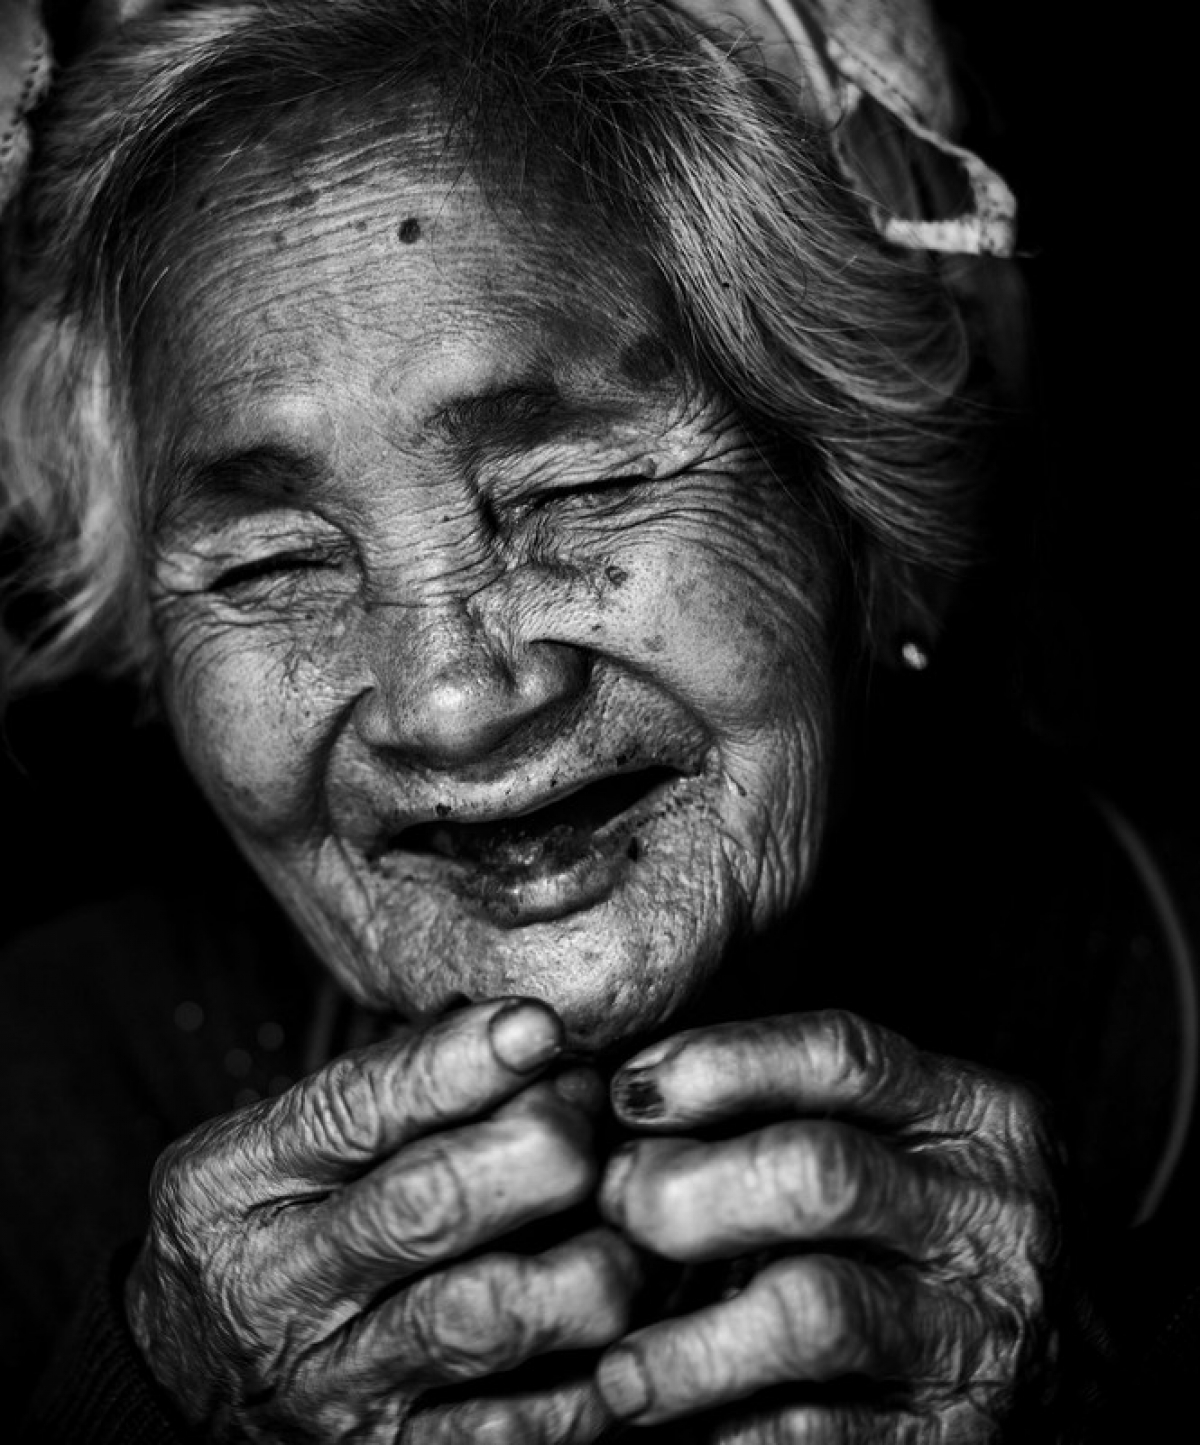 'Smile of Mom' by Vietnamese photographer @manhcuongvuong showcases an old person from the Raglai ethnic group in Khanh Hoa province as they cook.